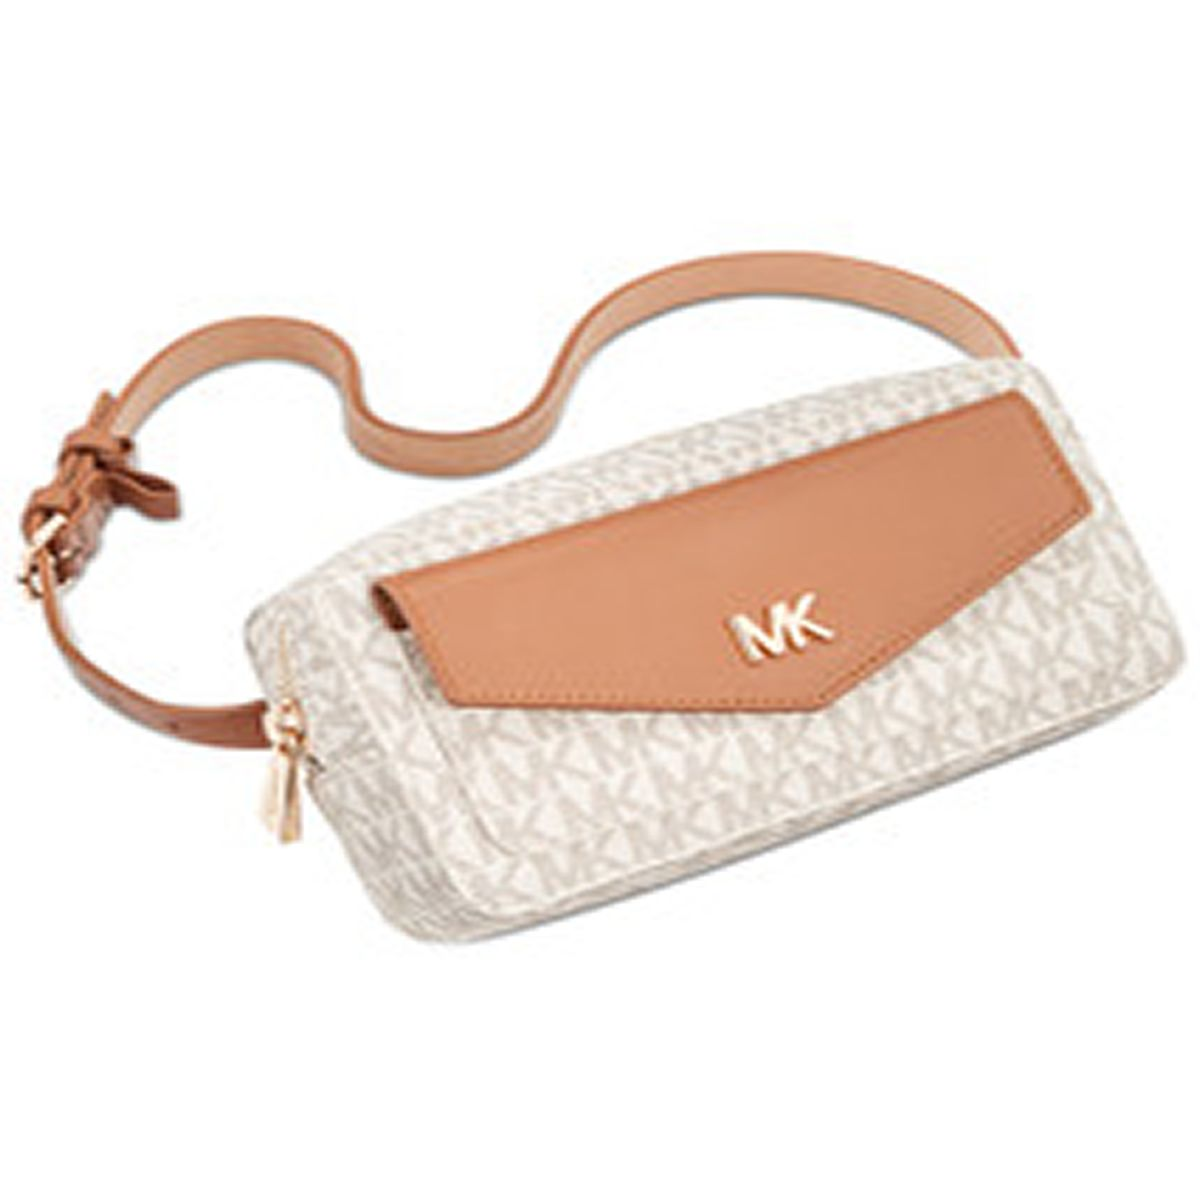 b1d7ee99d8fe Michael Kors Wallets and Accessories - Macy's